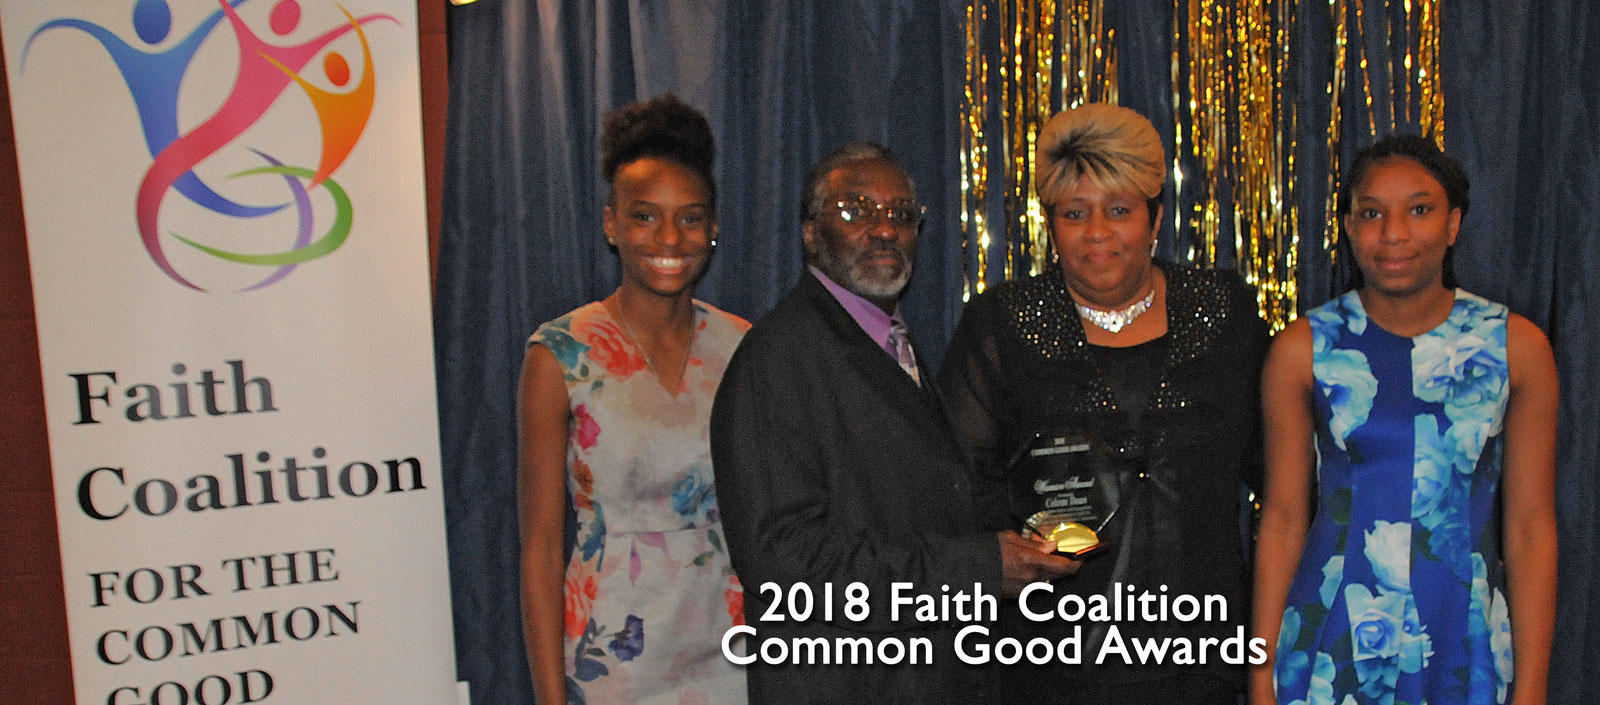 Faith Coalition Banquet - Common Good Awards